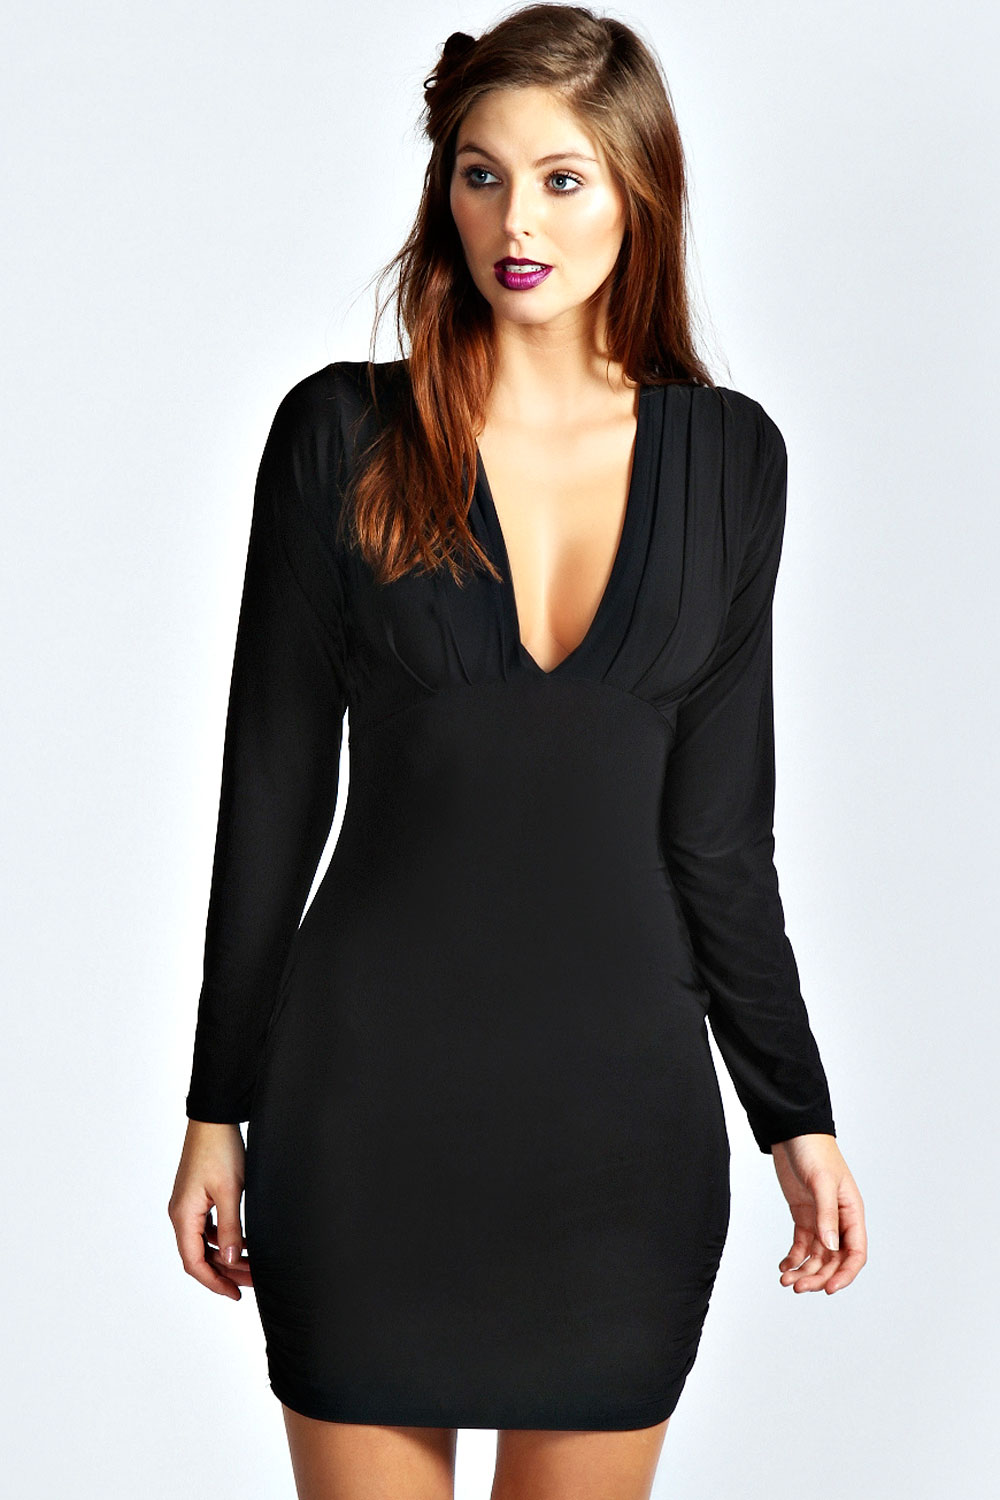 Boohoo Tabatha Slinky Plunge Neck Bodycon Dress Ebay